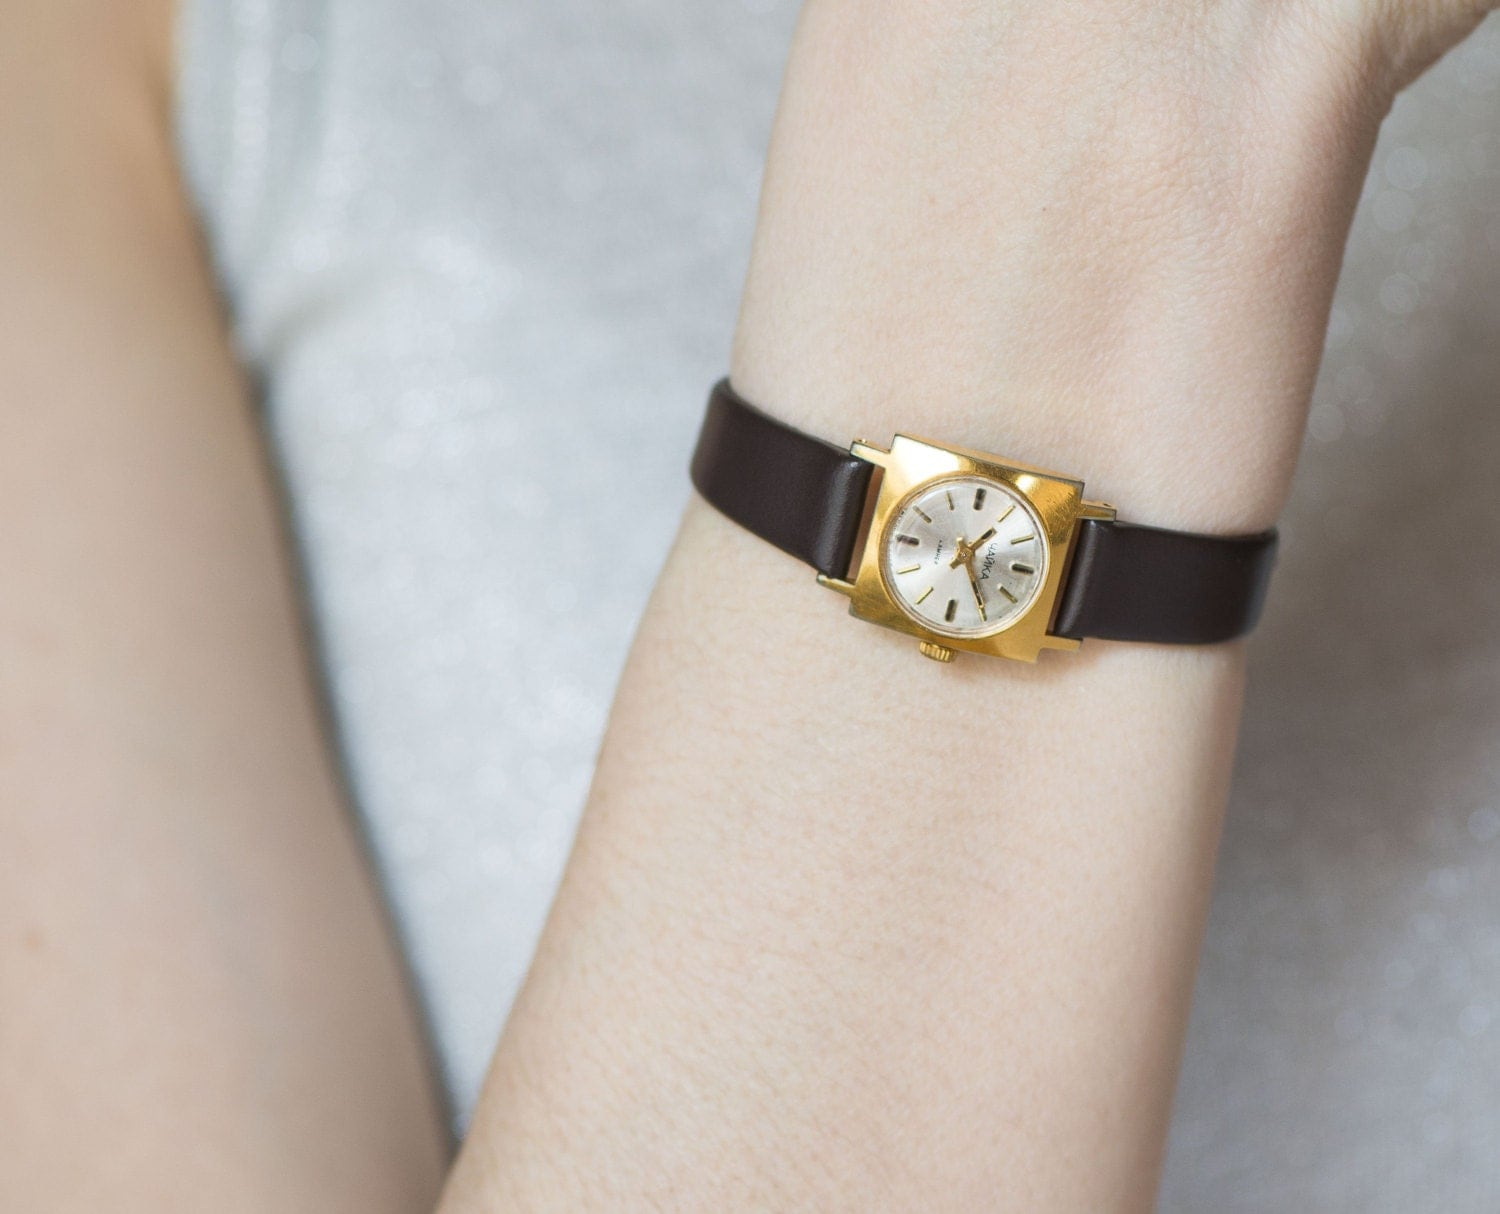 Sensational Square Ladys Watch Gold Plated Womens Watch Short Hairstyles For Black Women Fulllsitofus